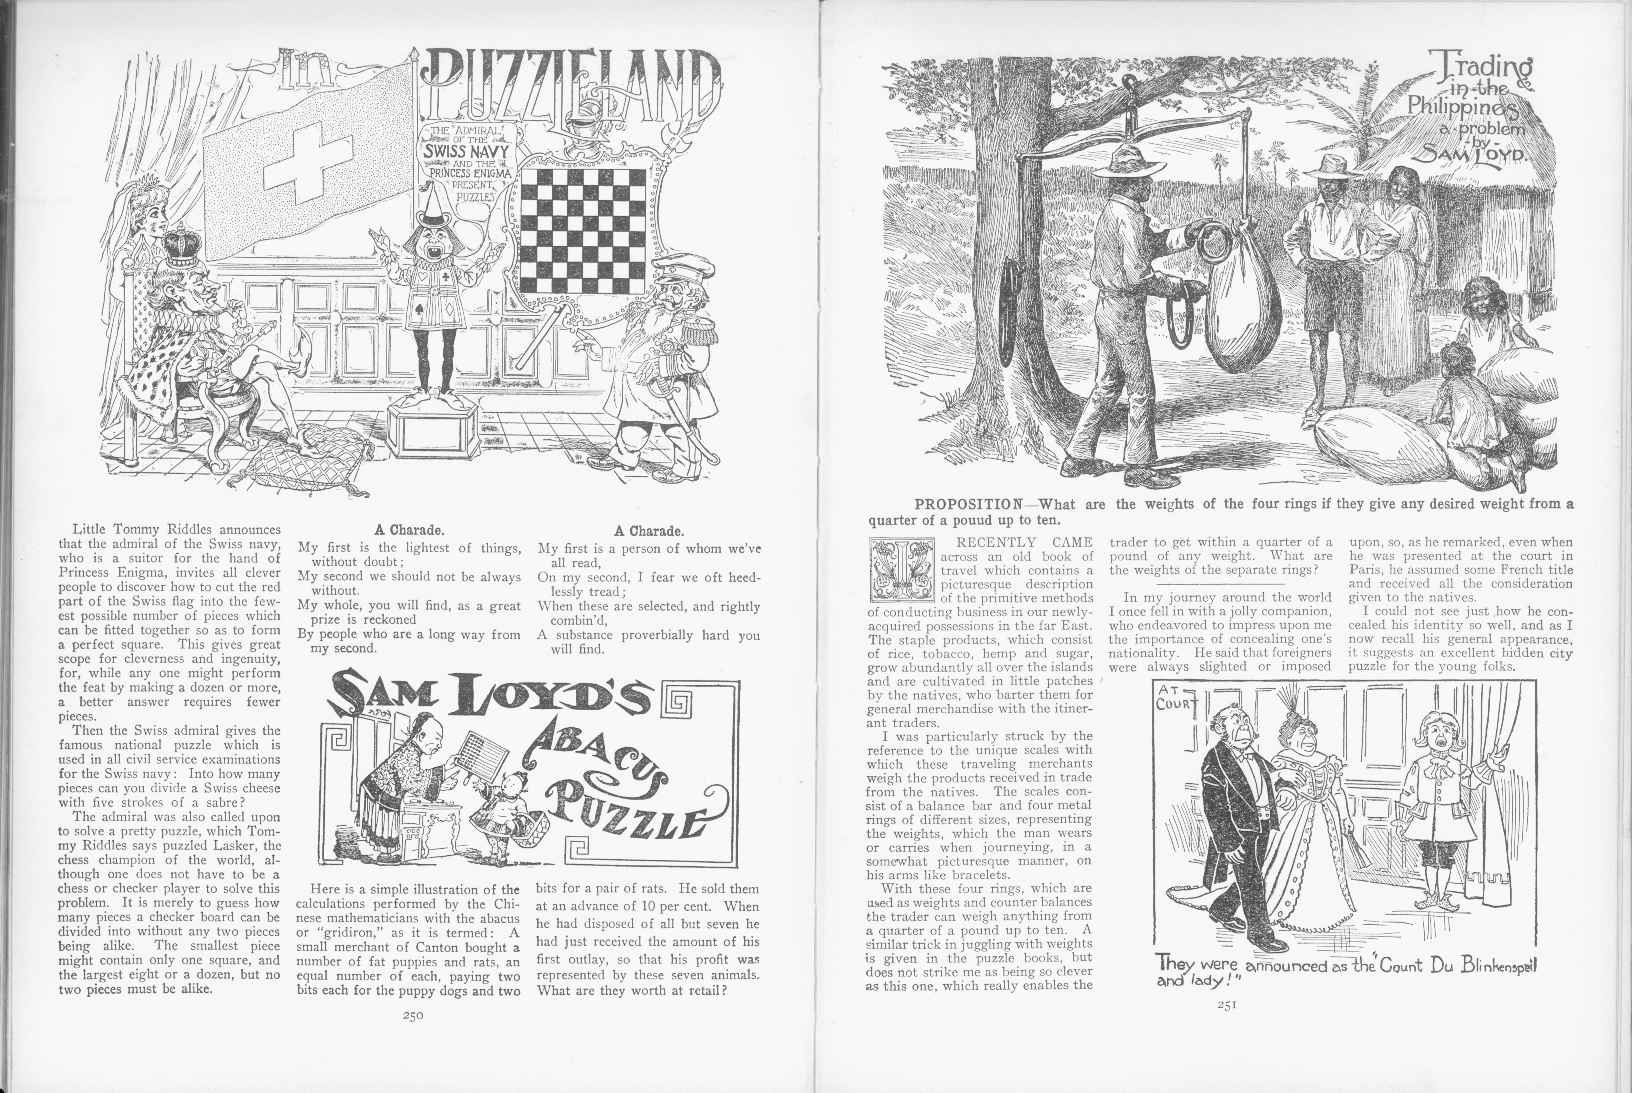 Sam Loyd - Cyclopedia of Puzzles - page 250-251